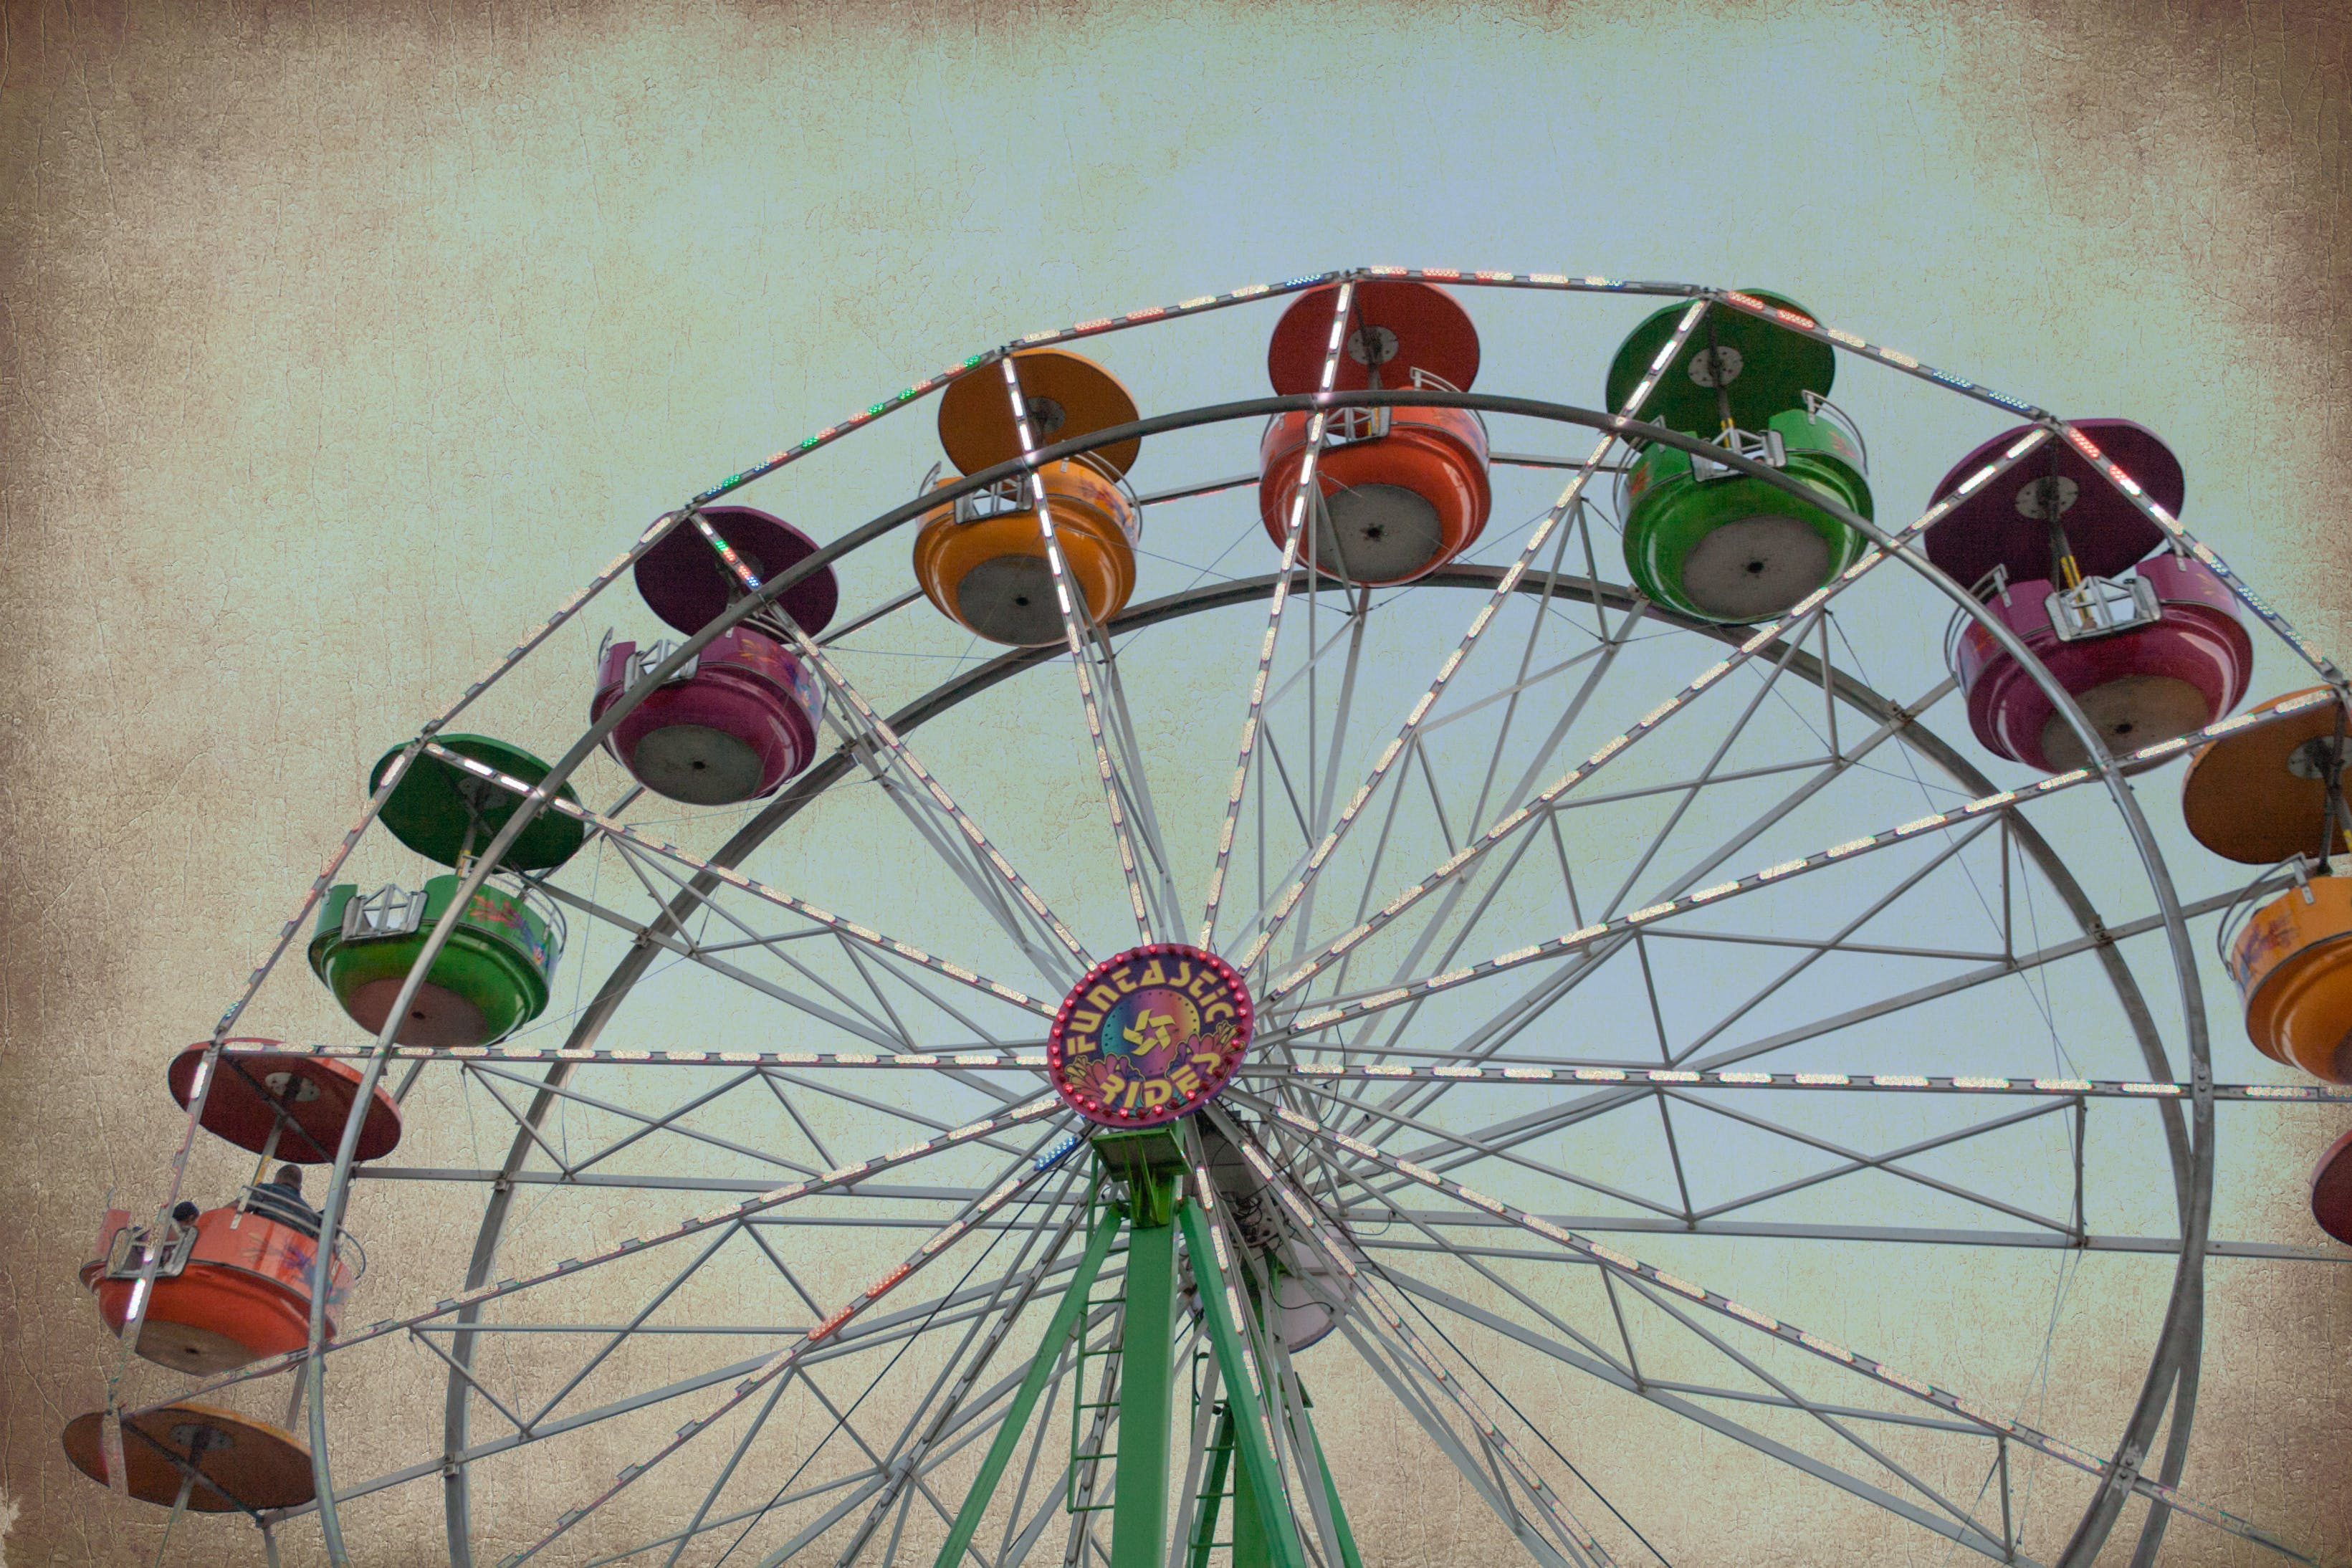 Free stock photo of carnival, ferris wheel, funtastic, nostalgia